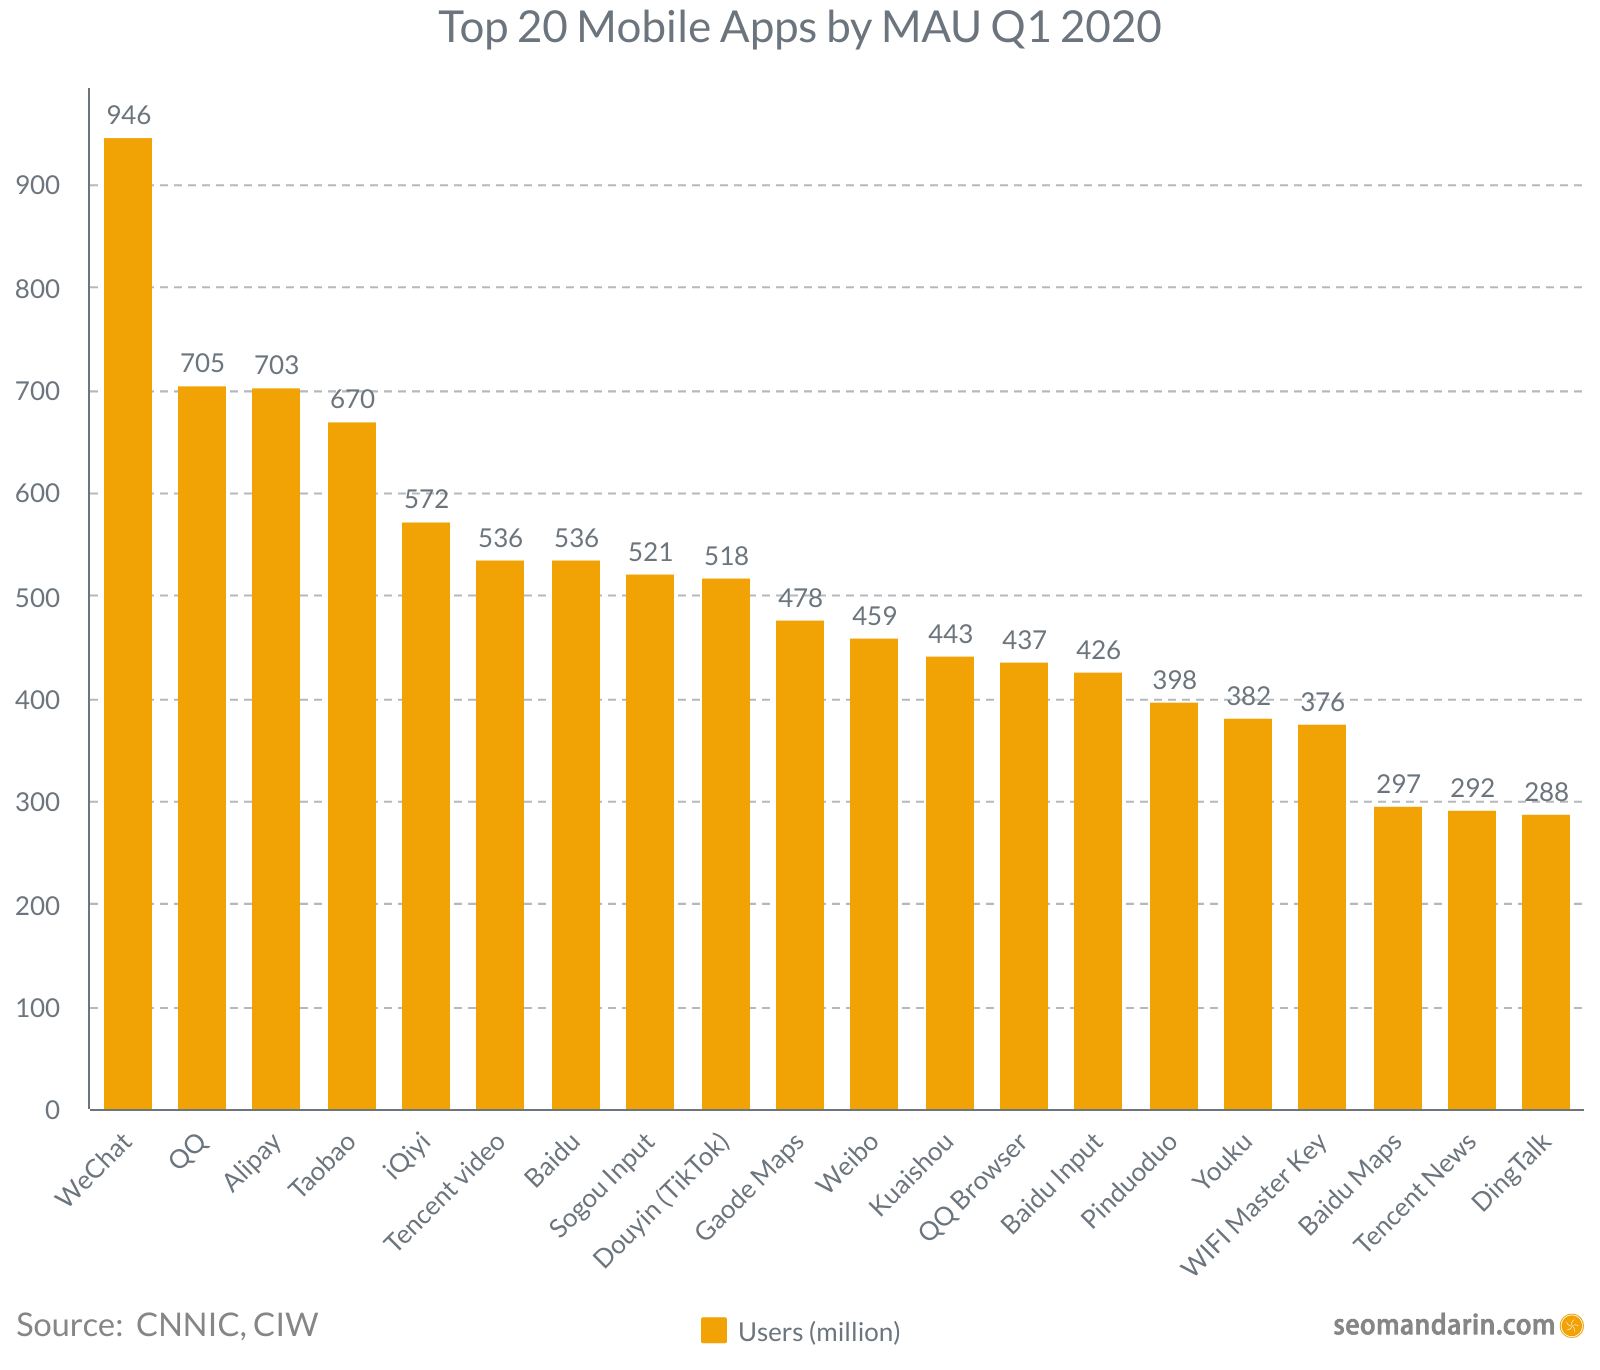 China Top 20 Mobile Apps by MAU 2020